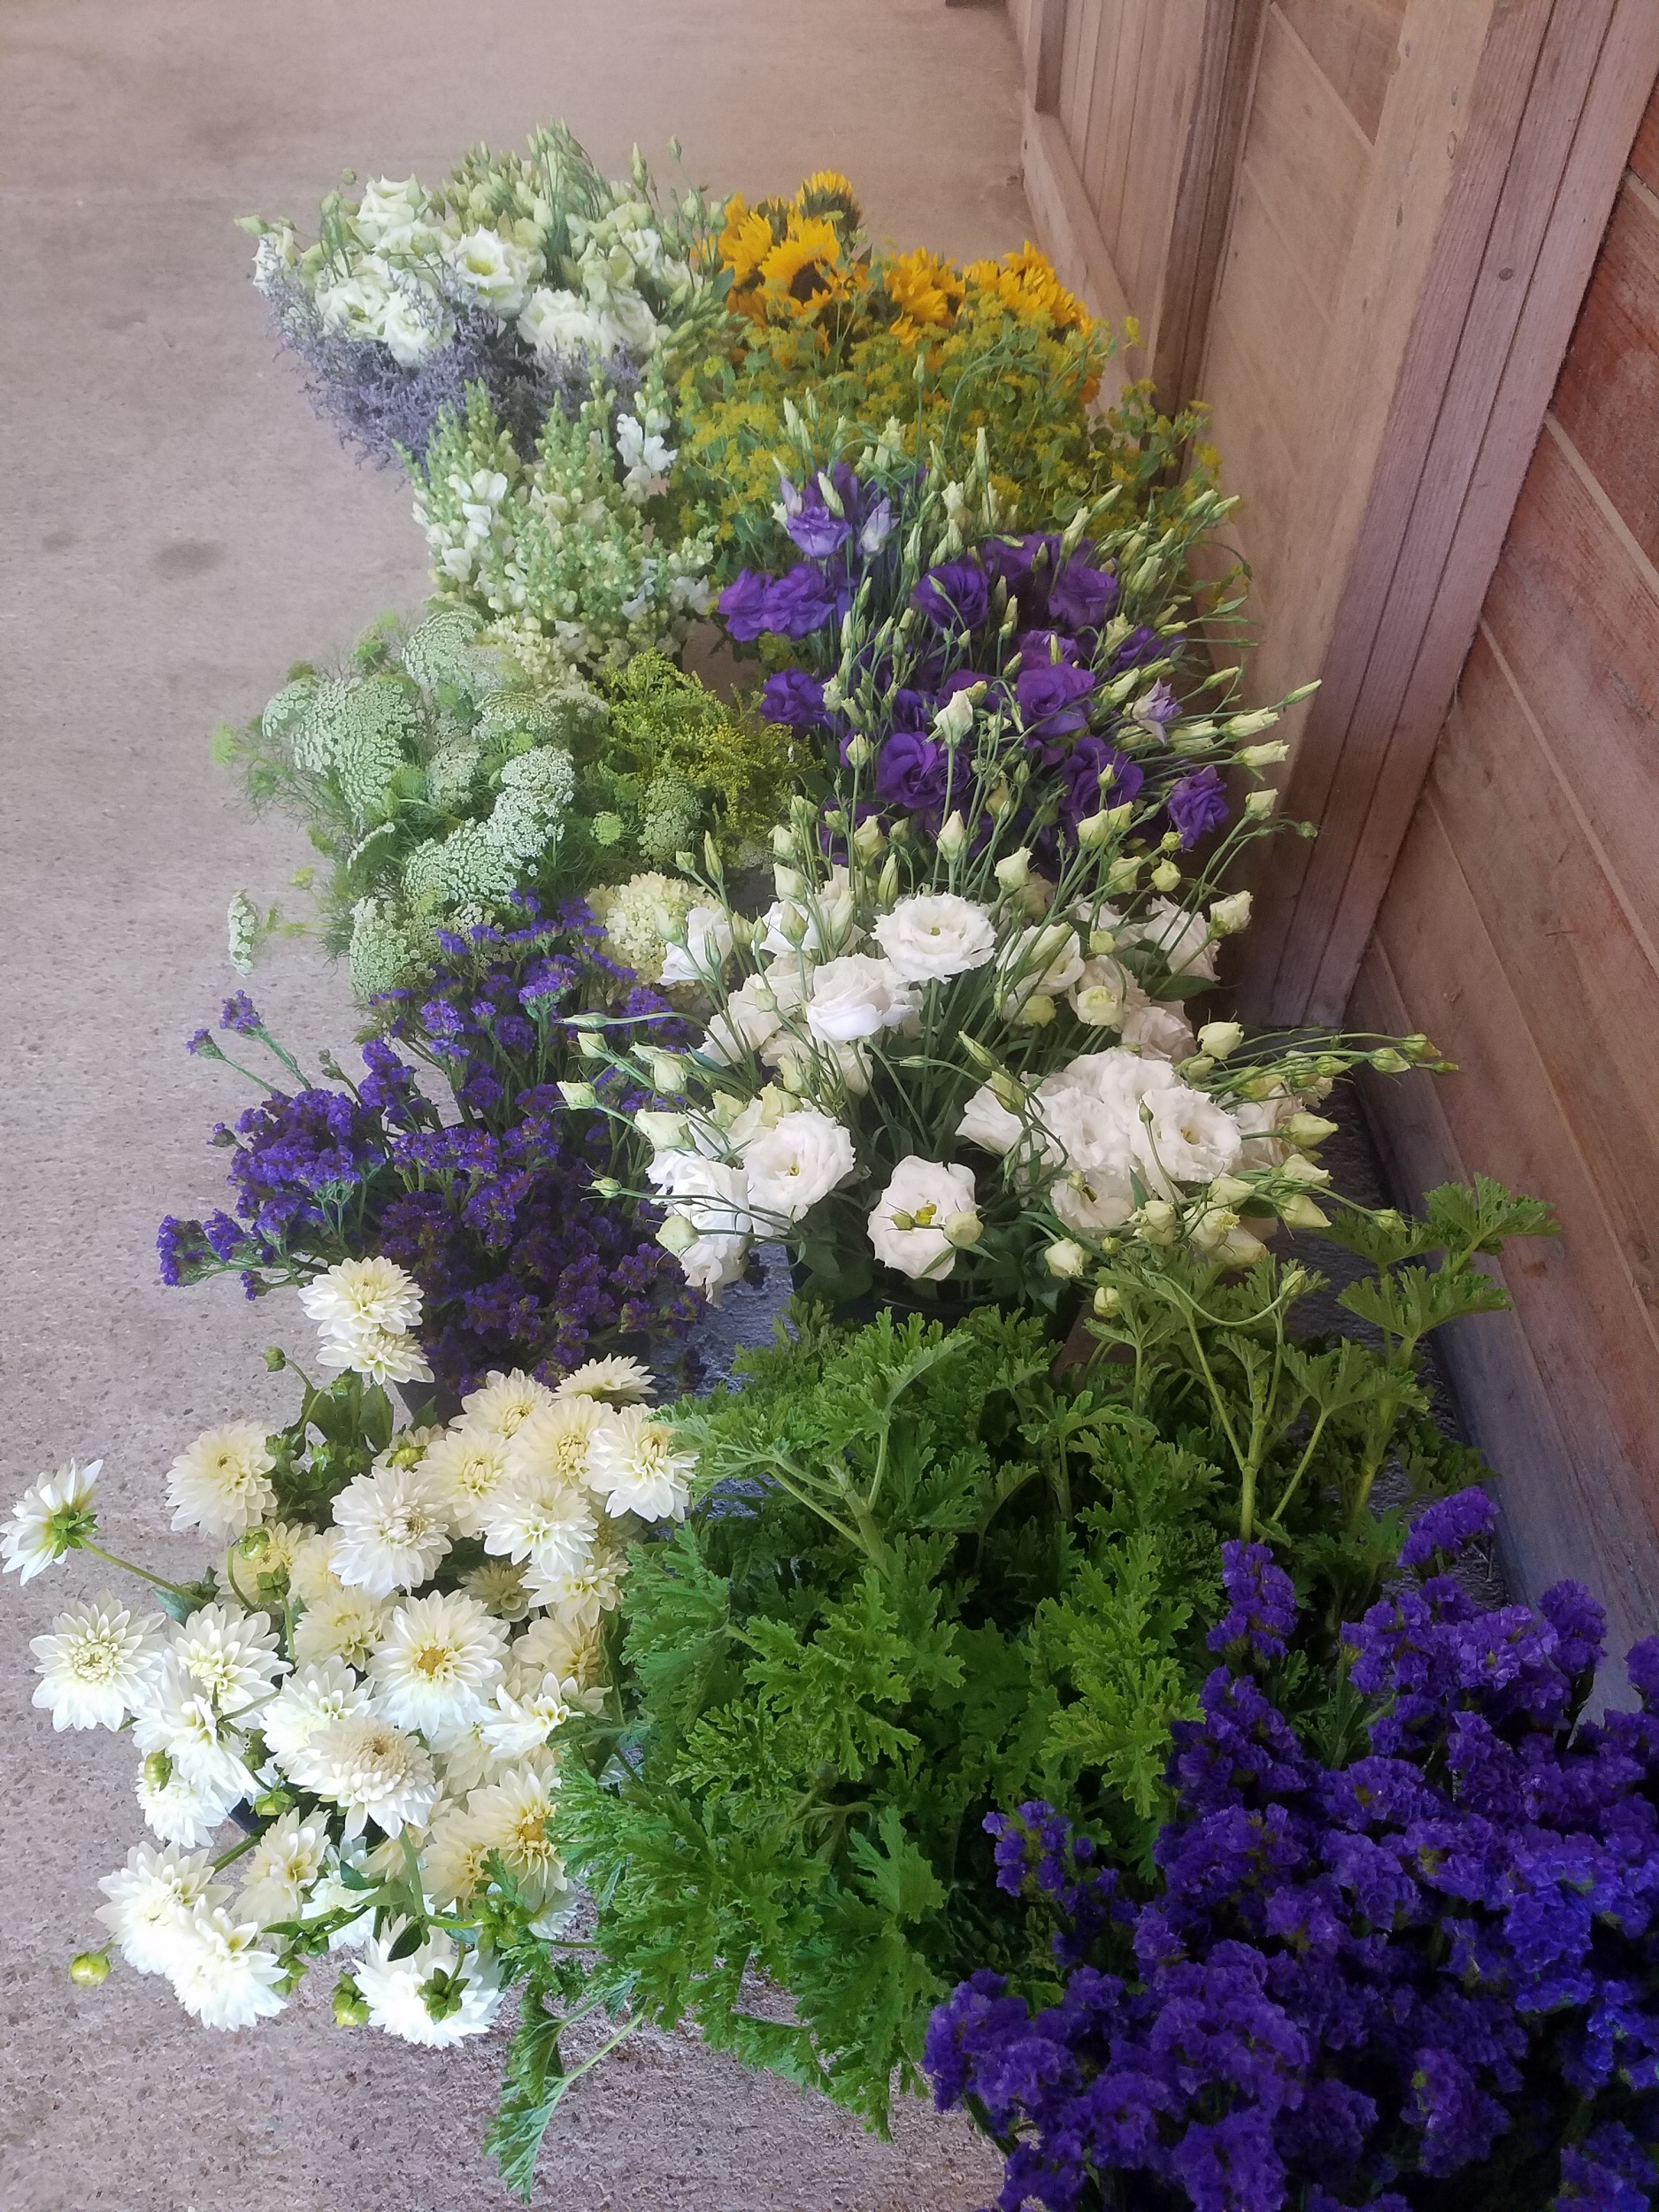 flower-buckets-local-farm.jpg